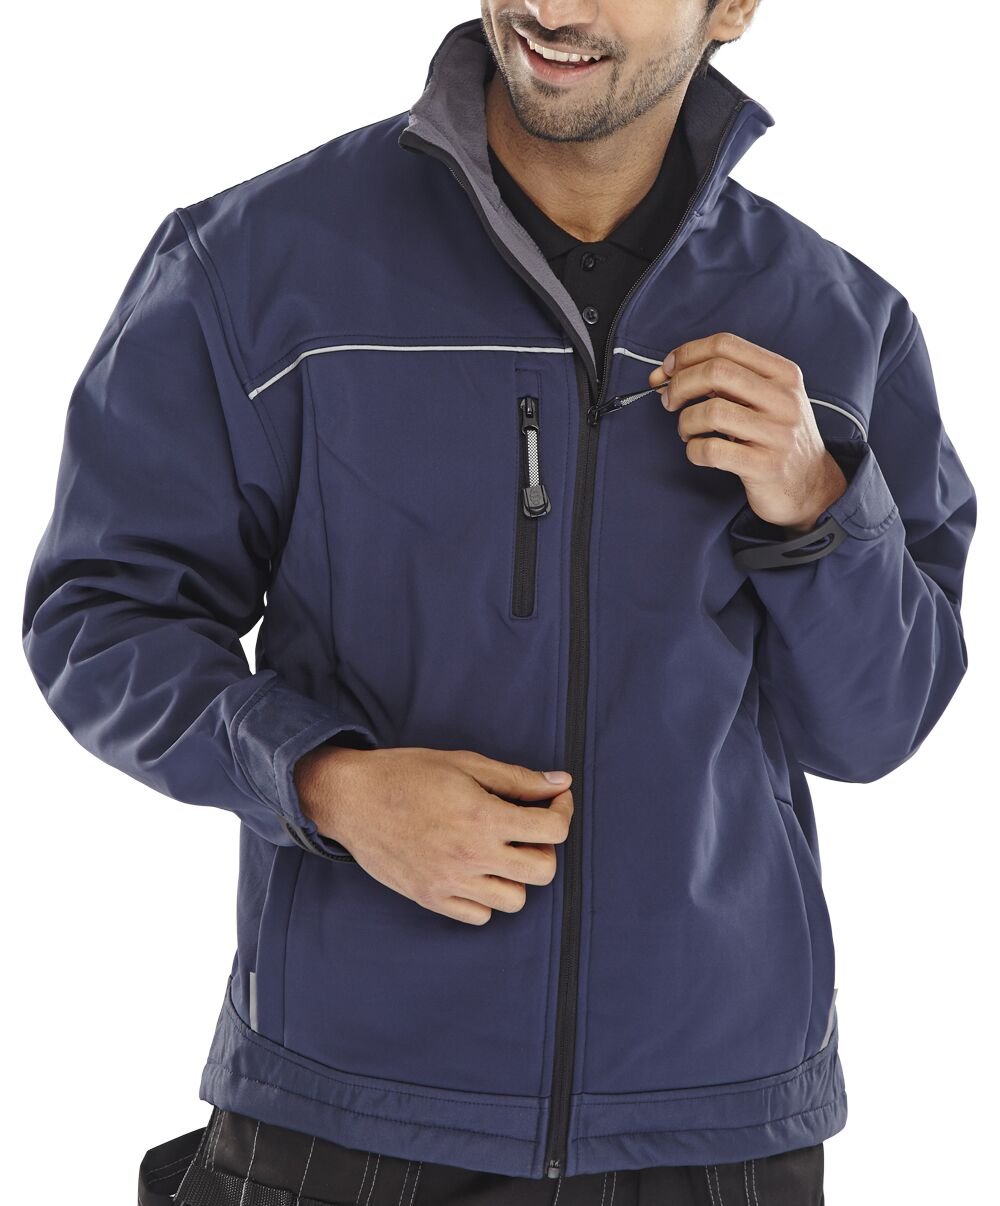 Body Protection Click Workwear Soft Shell Jacket Water Resistant Windproof 2XL Navy Ref SSJNXXL *Approx 3 Day Leadtime*